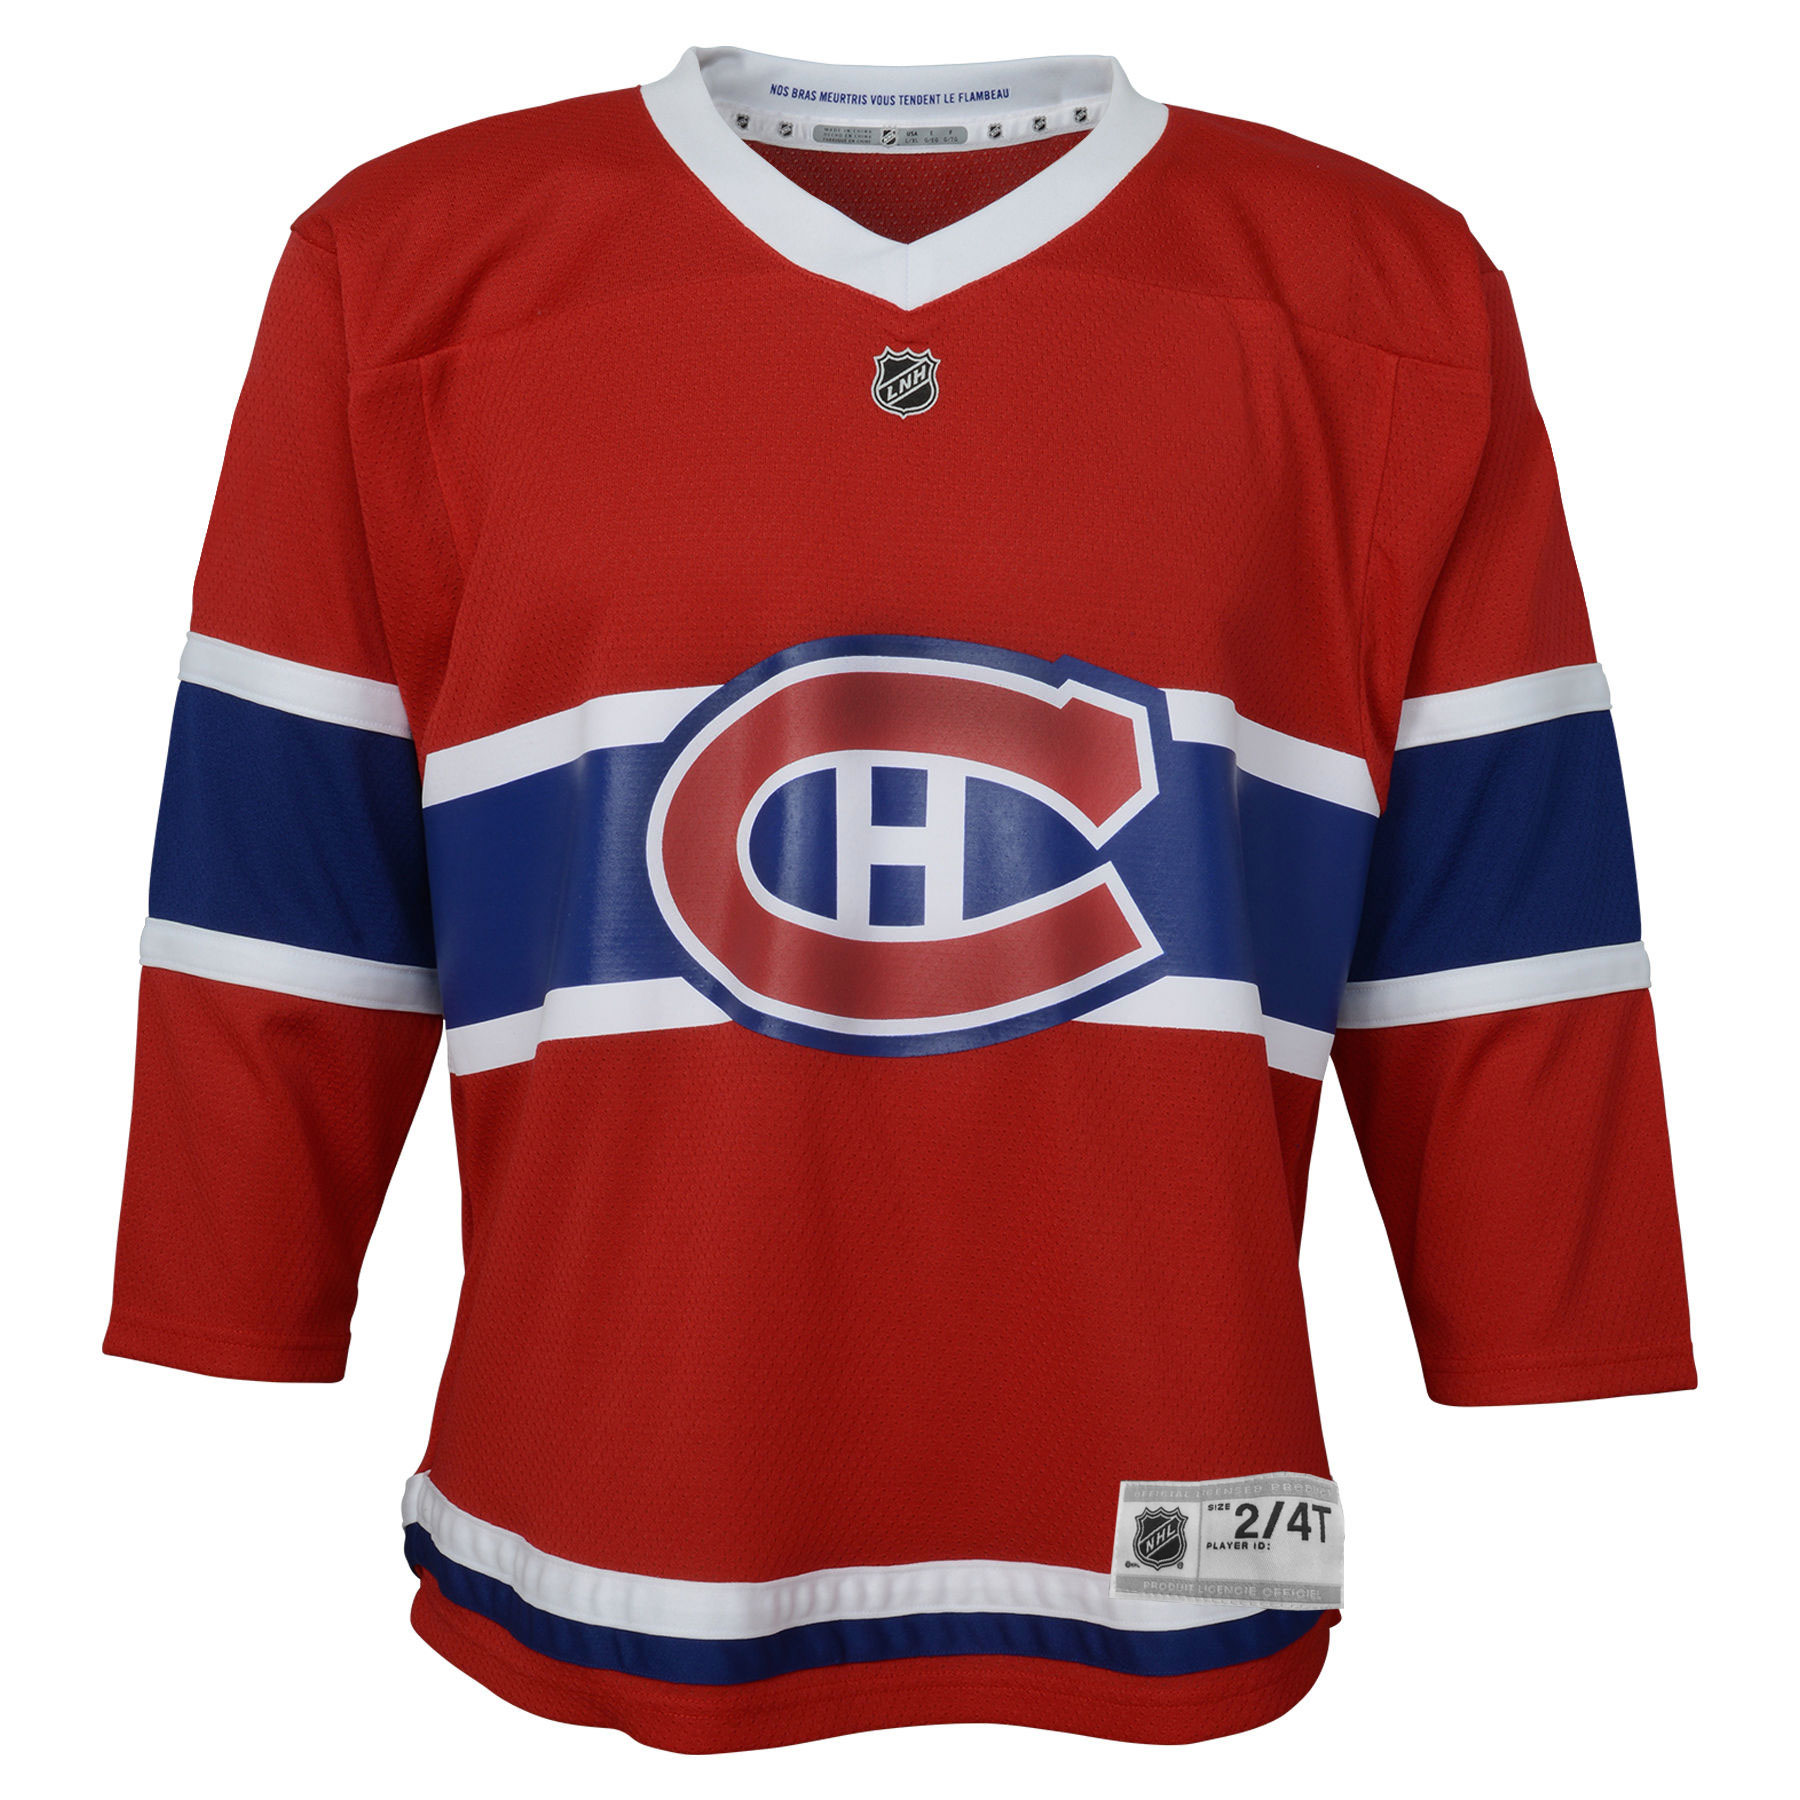 Montreal Canadiens NHL Toddler Replica (2-4T) Home Hockey Jersey - NHL Team  zoomed image 6b0be57f58b